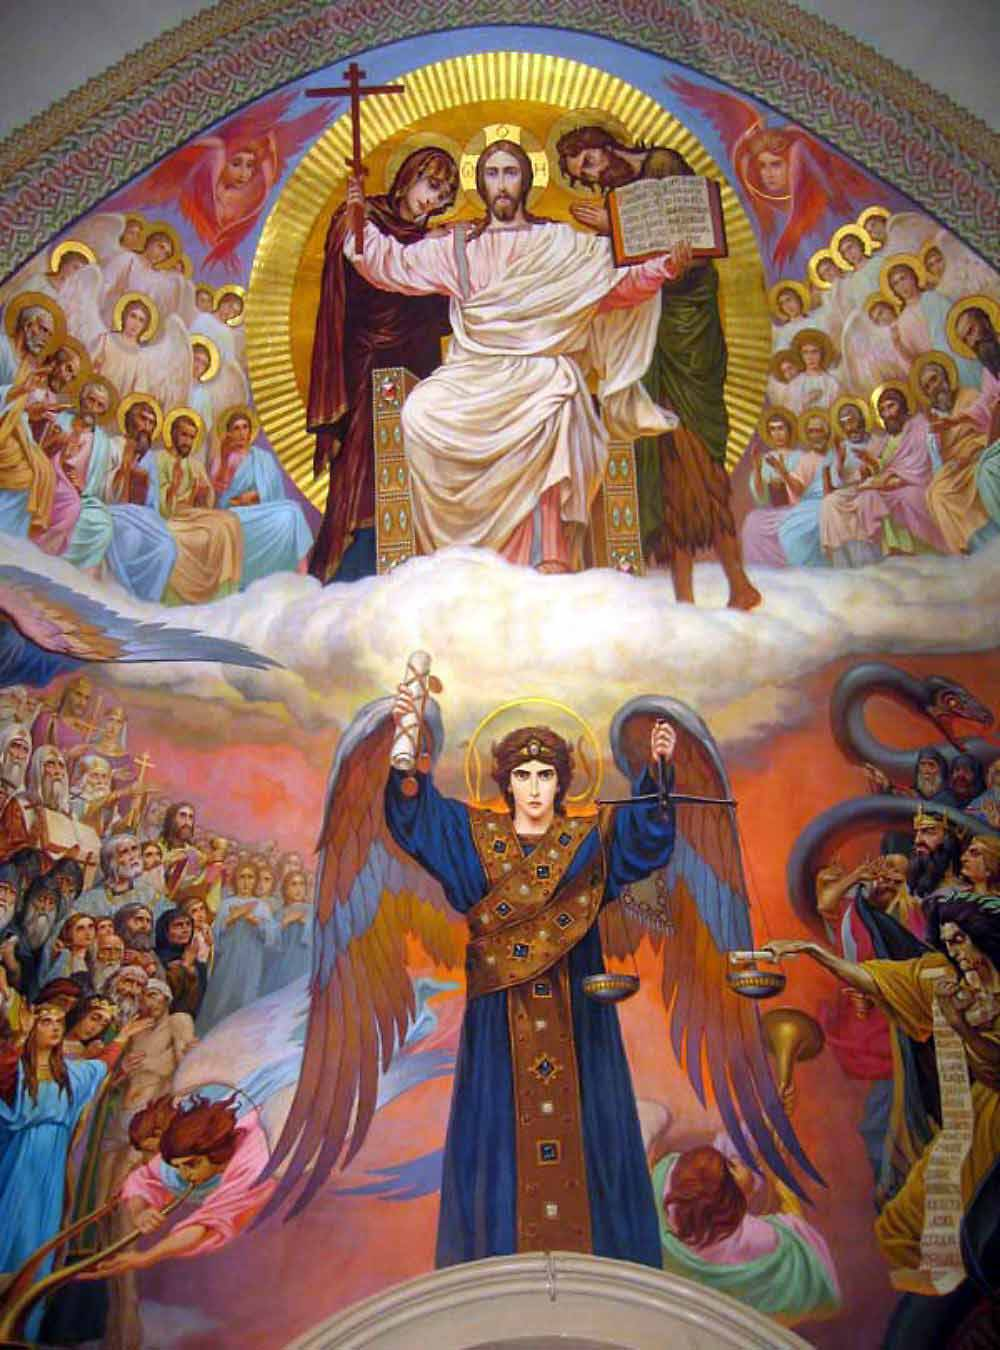 quadro -the-last-judgement-church-of-the-mother-of-god-of-kazan-tolyatti-rf-2001